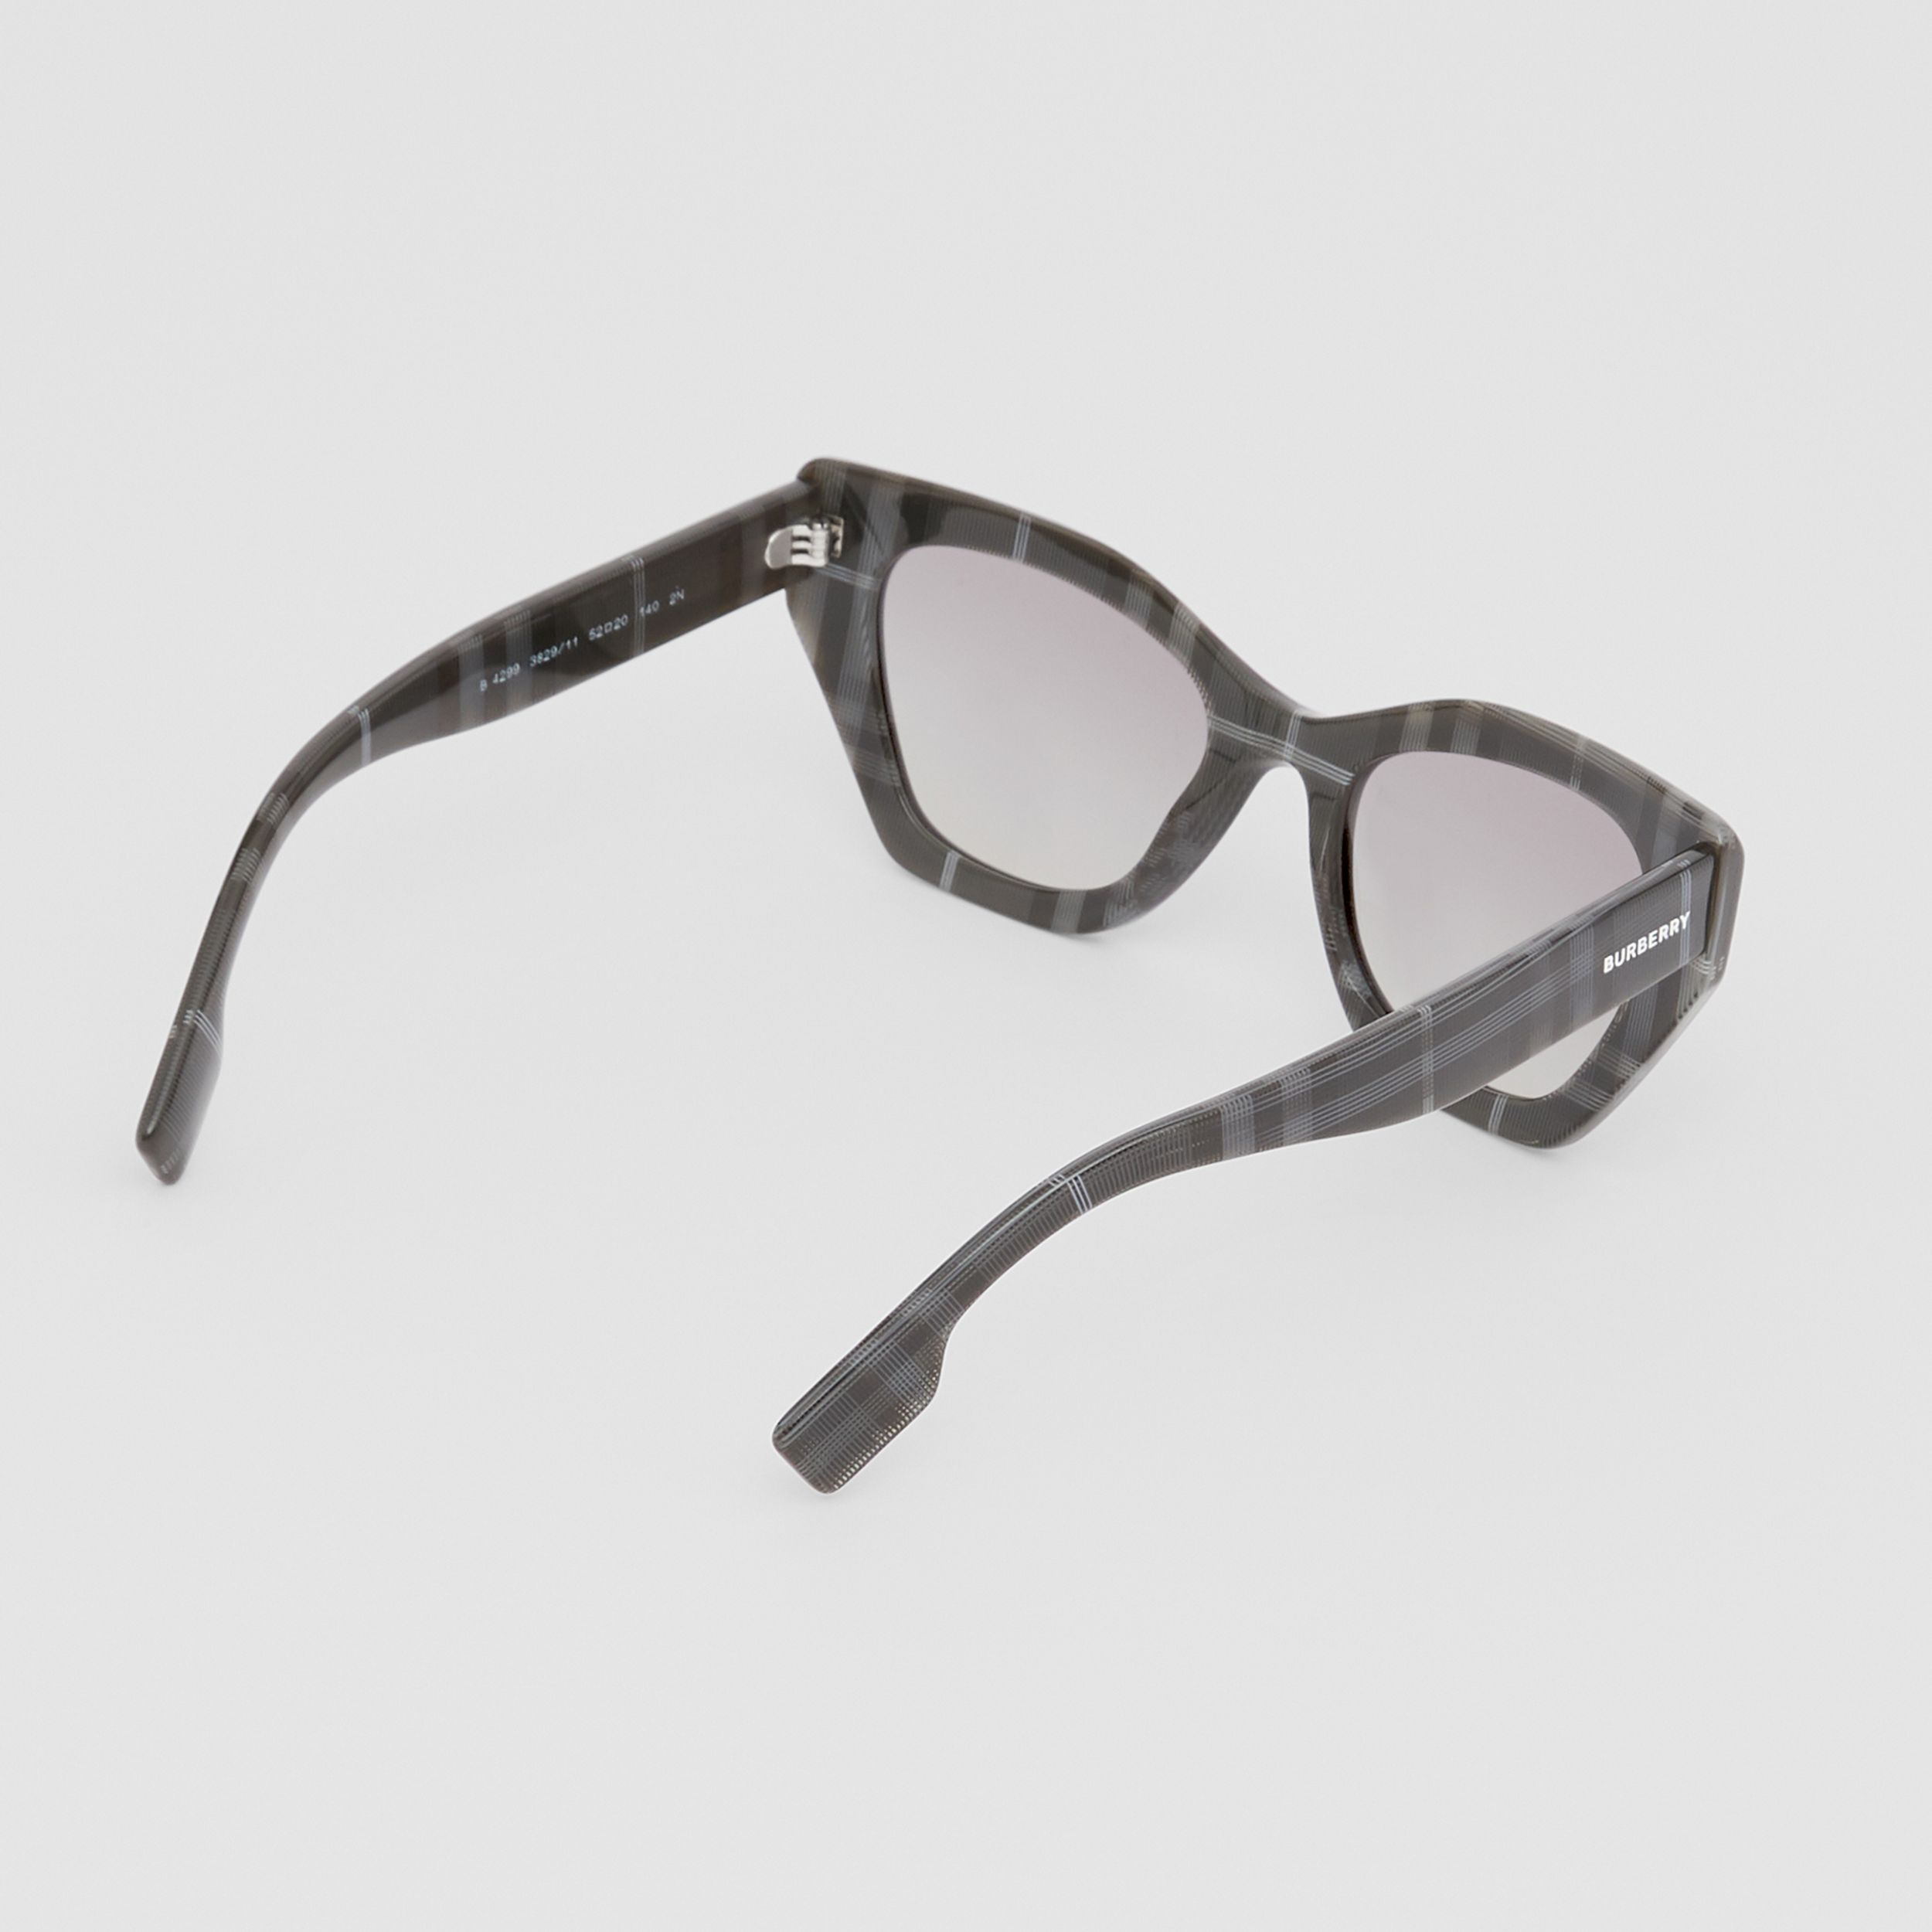 Butterfly Frame Sunglasses in Transparent Dark Grey - Women | Burberry - 4